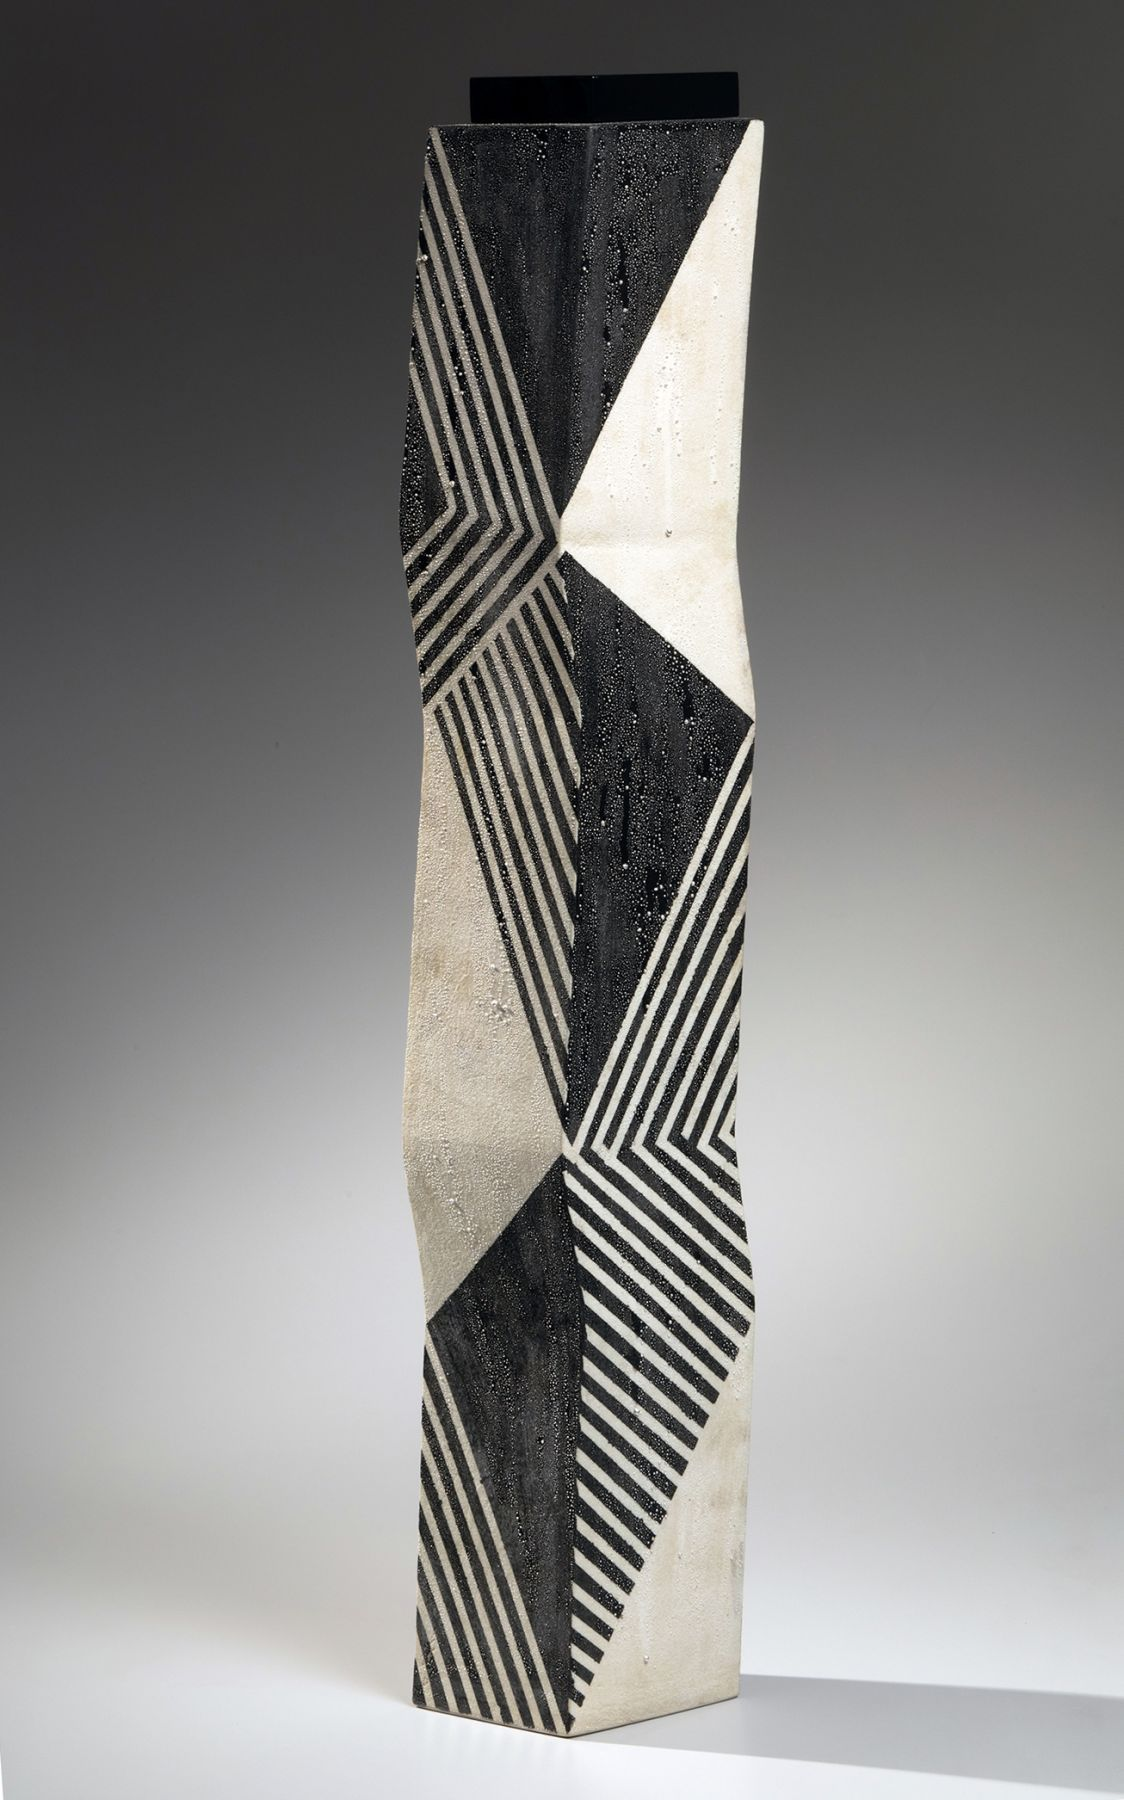 featured object - kondo zigzag 2